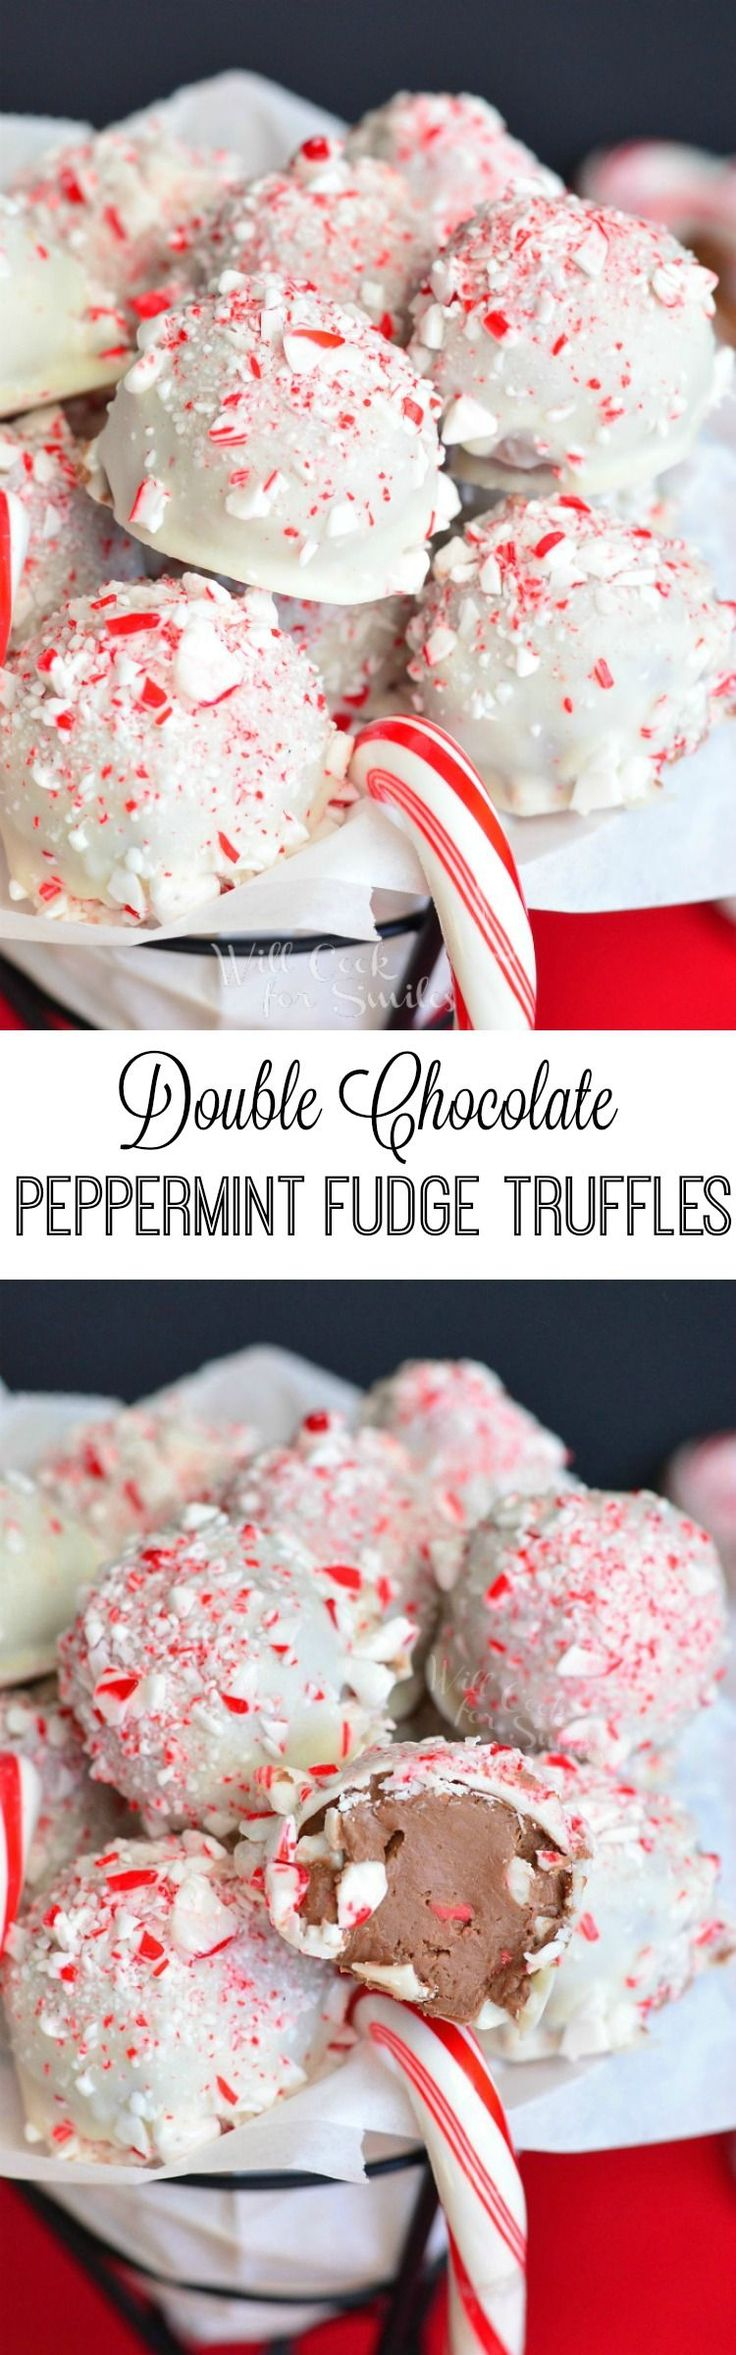 Double Chocolate Peppermint Fudge Truffles. Soft fudge, crunchy peppermint, and smooth, sweet chocolate are all loaded into one delicious little truffle.